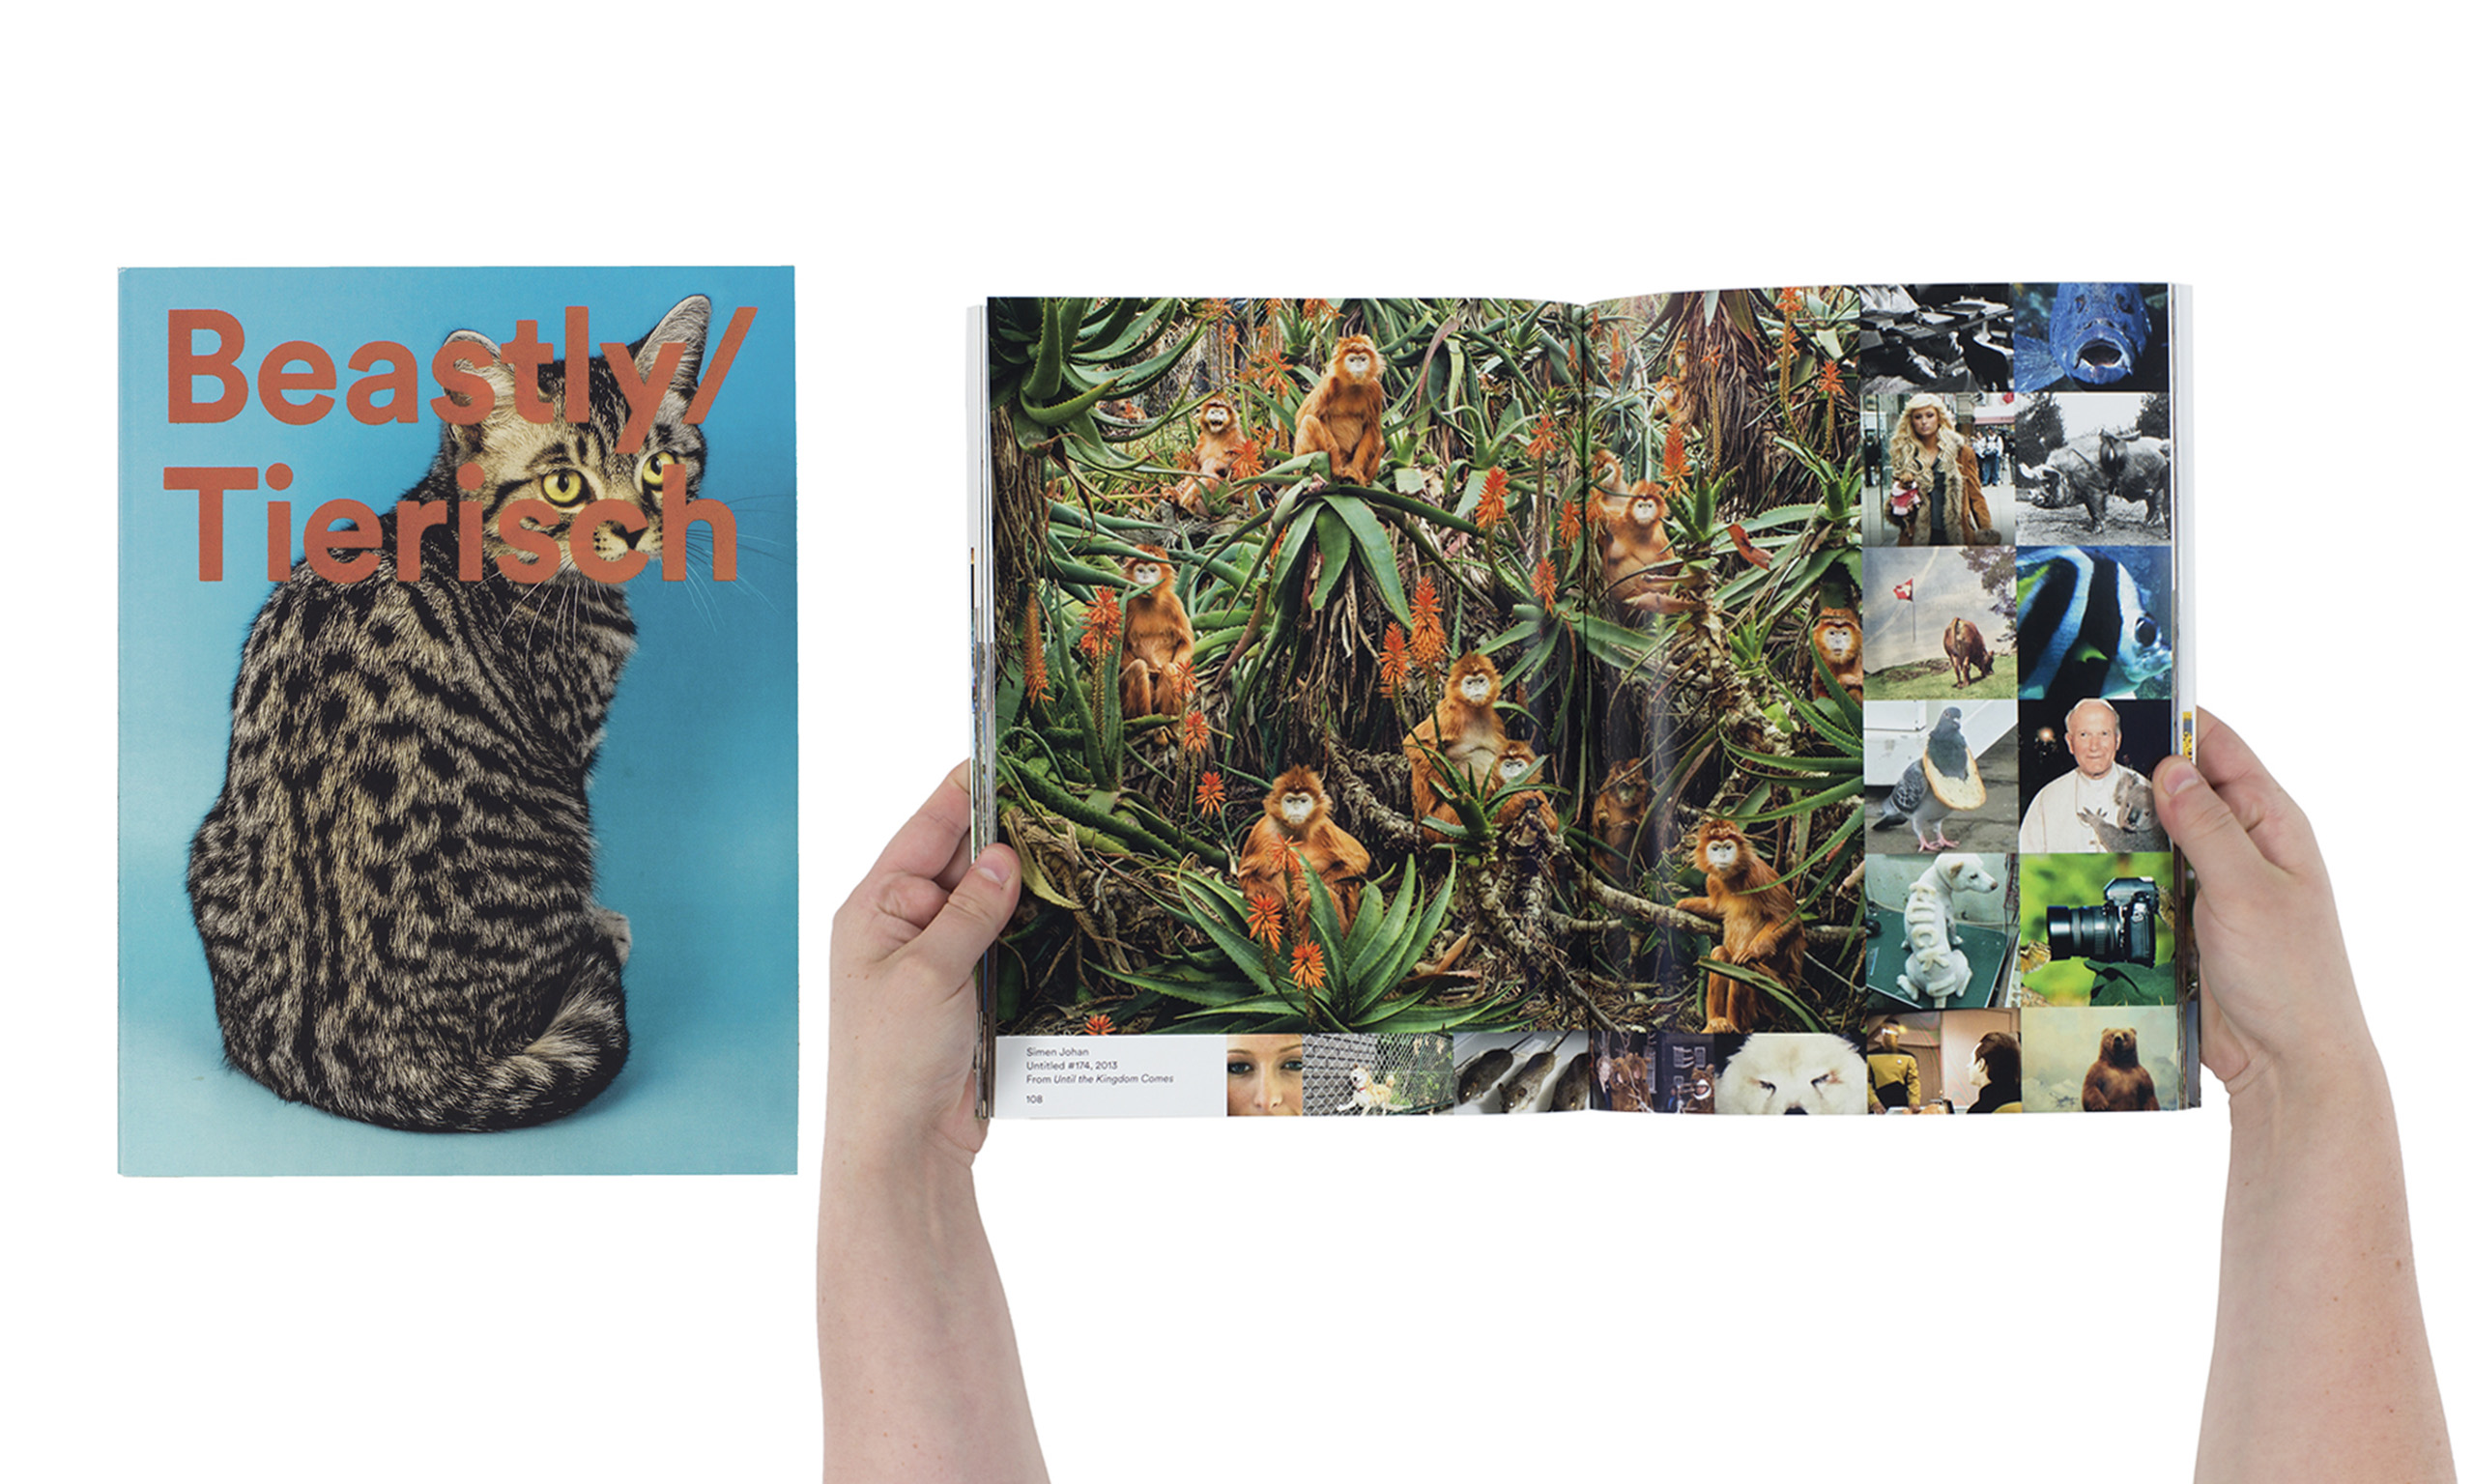 Beastly/Tierisch by Duncan Forbes, Matthias Gabi, and Daniela Janser, published by Spector Books/Fotomuseum Winterthur. Shortlisted for Photography Catalogue of the Year category.